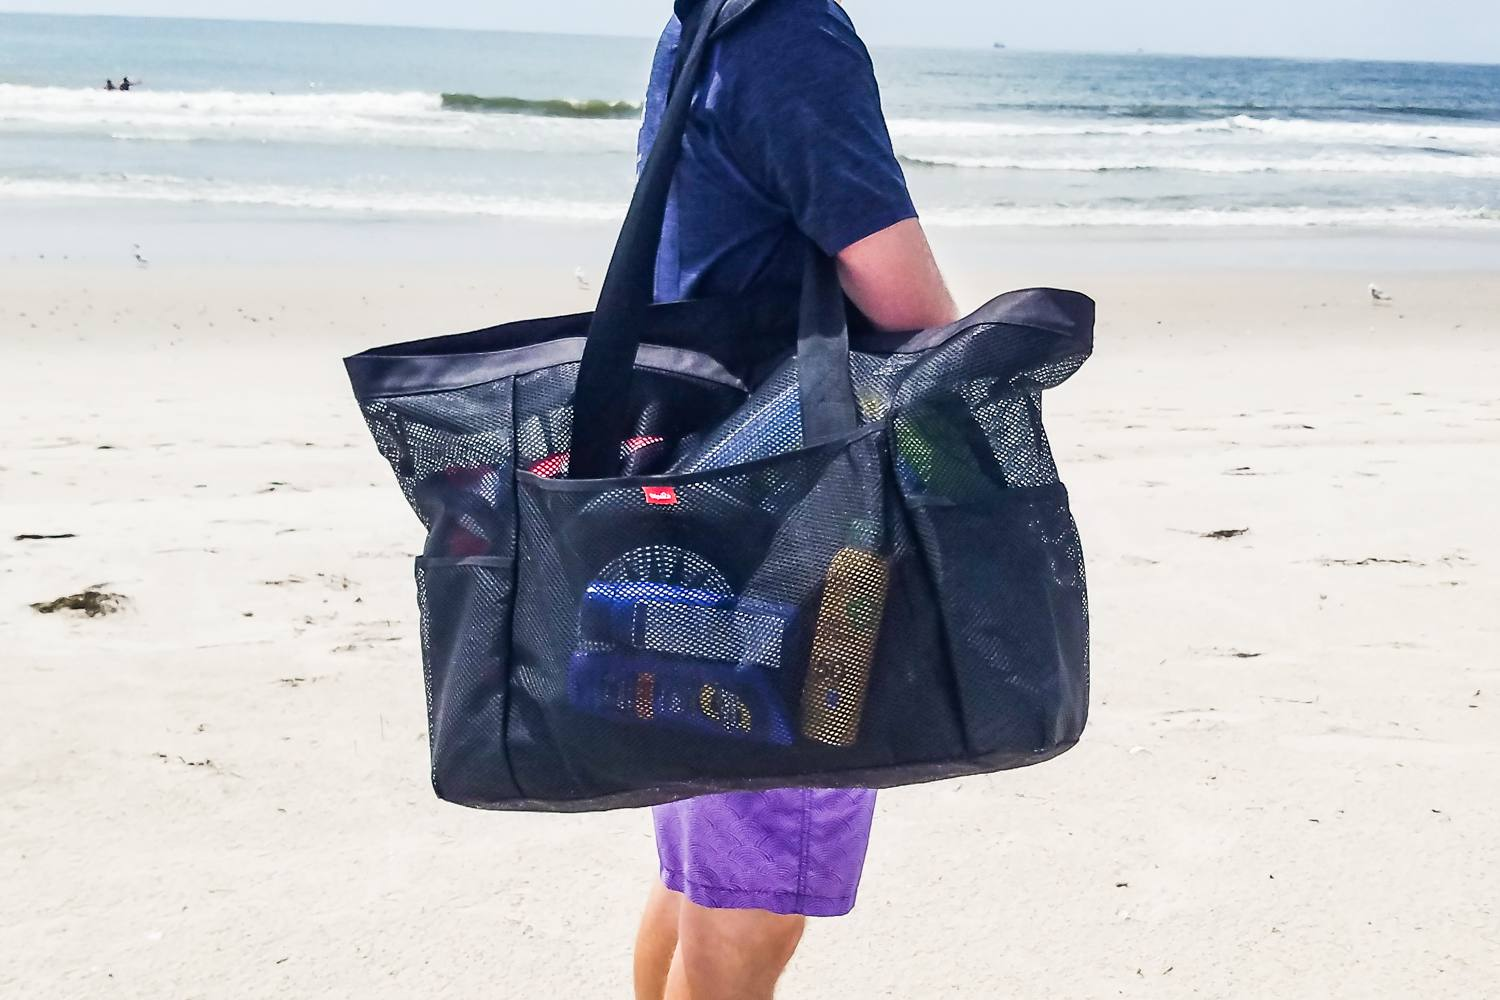 d4a97bc4072e The 8 Best Beach Bags of 2019